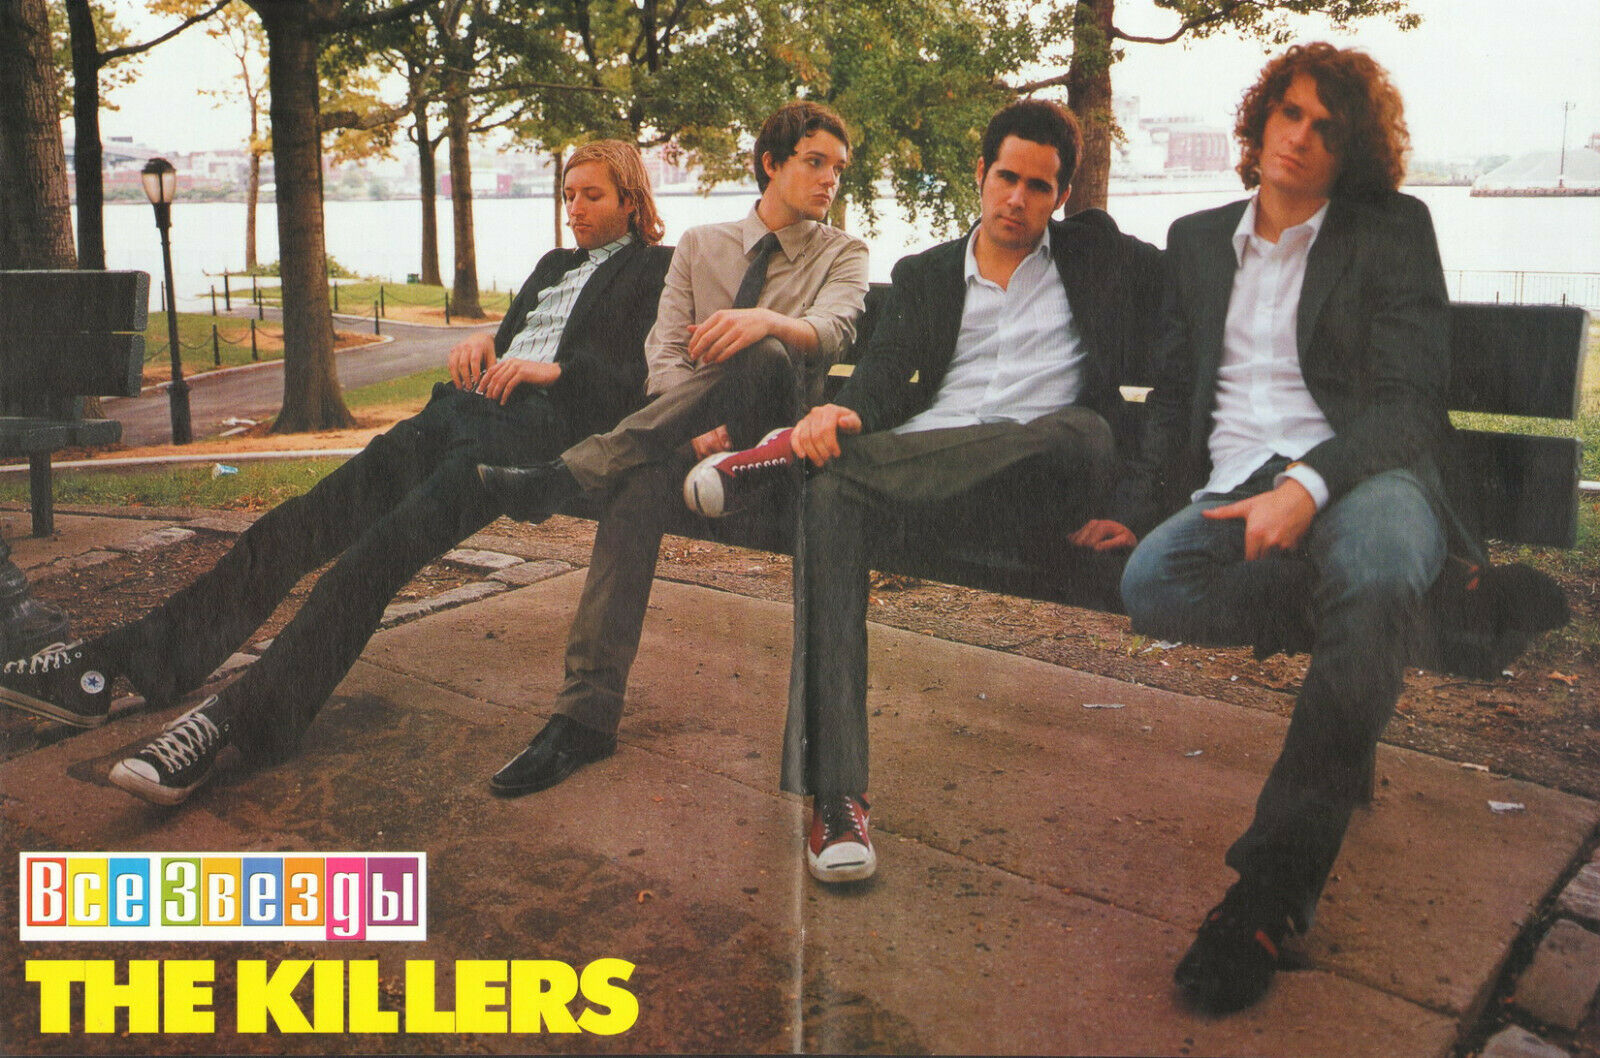 THE KILLERS / SEXY CHRISTINA AGUILERA BEAUTIFUL RUSSIAN CENTERFOLD POSTER 2008